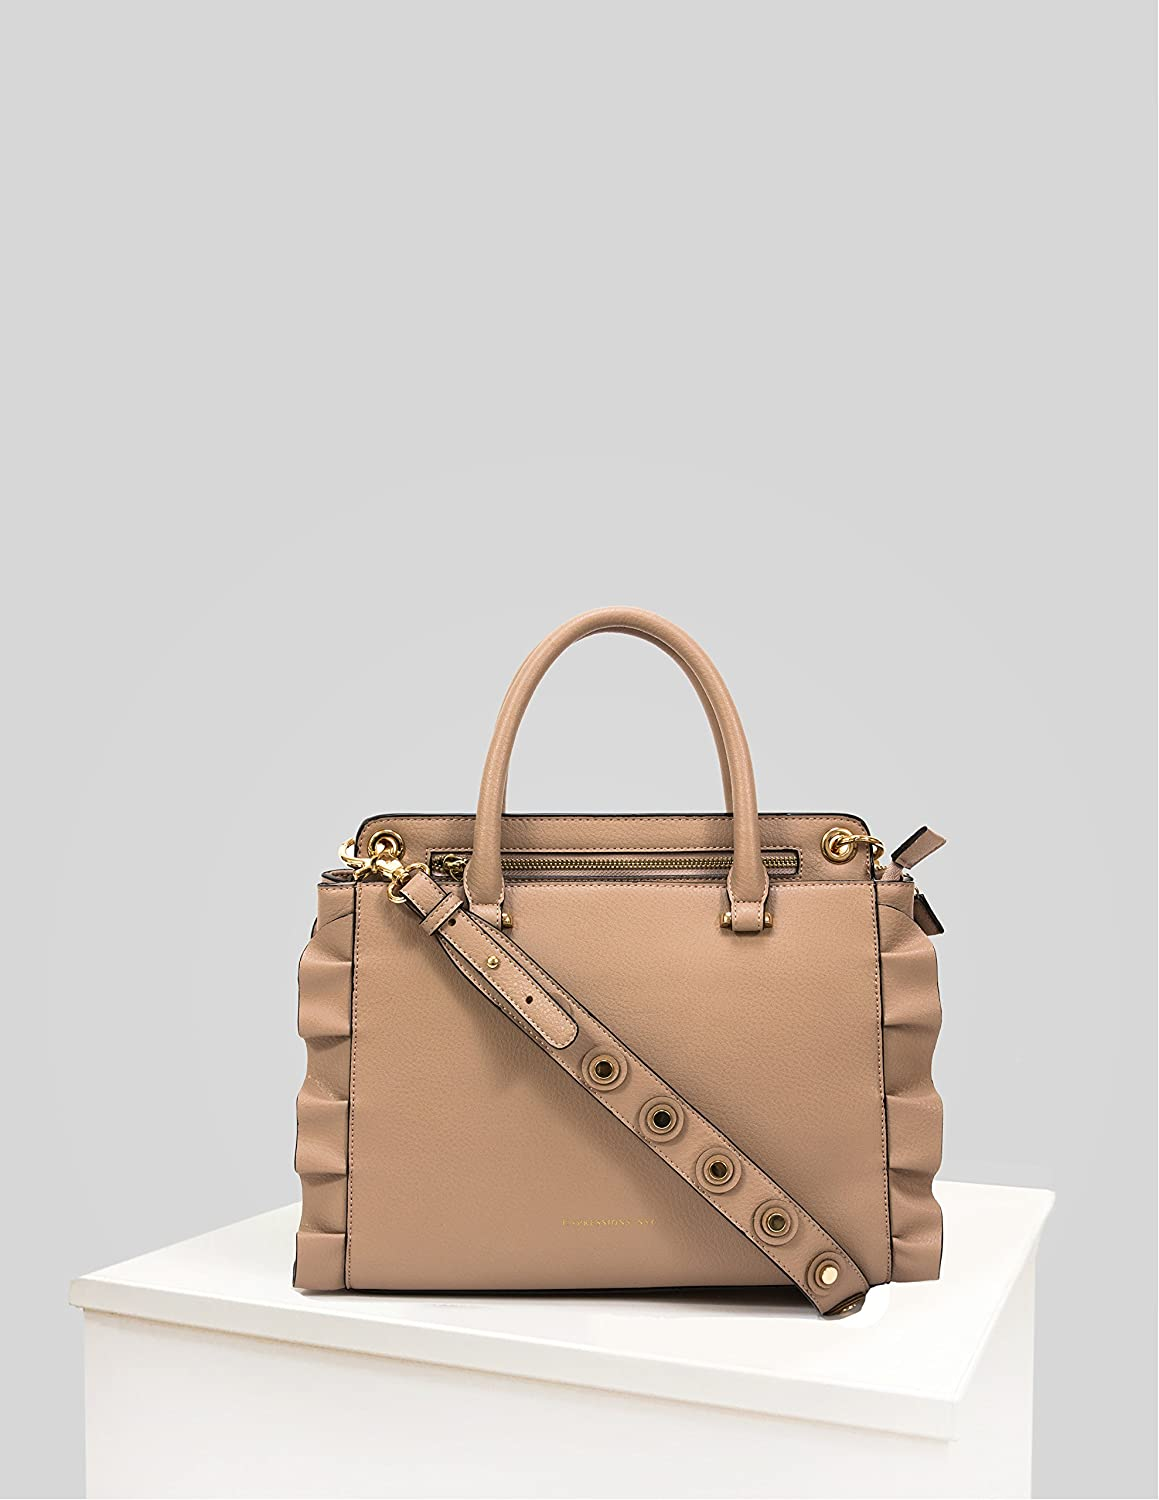 EXPRESSIONS NYC 5TH AVE CAMEL SATCHEL WITH RUFFLES: Amazon ca: Shoes